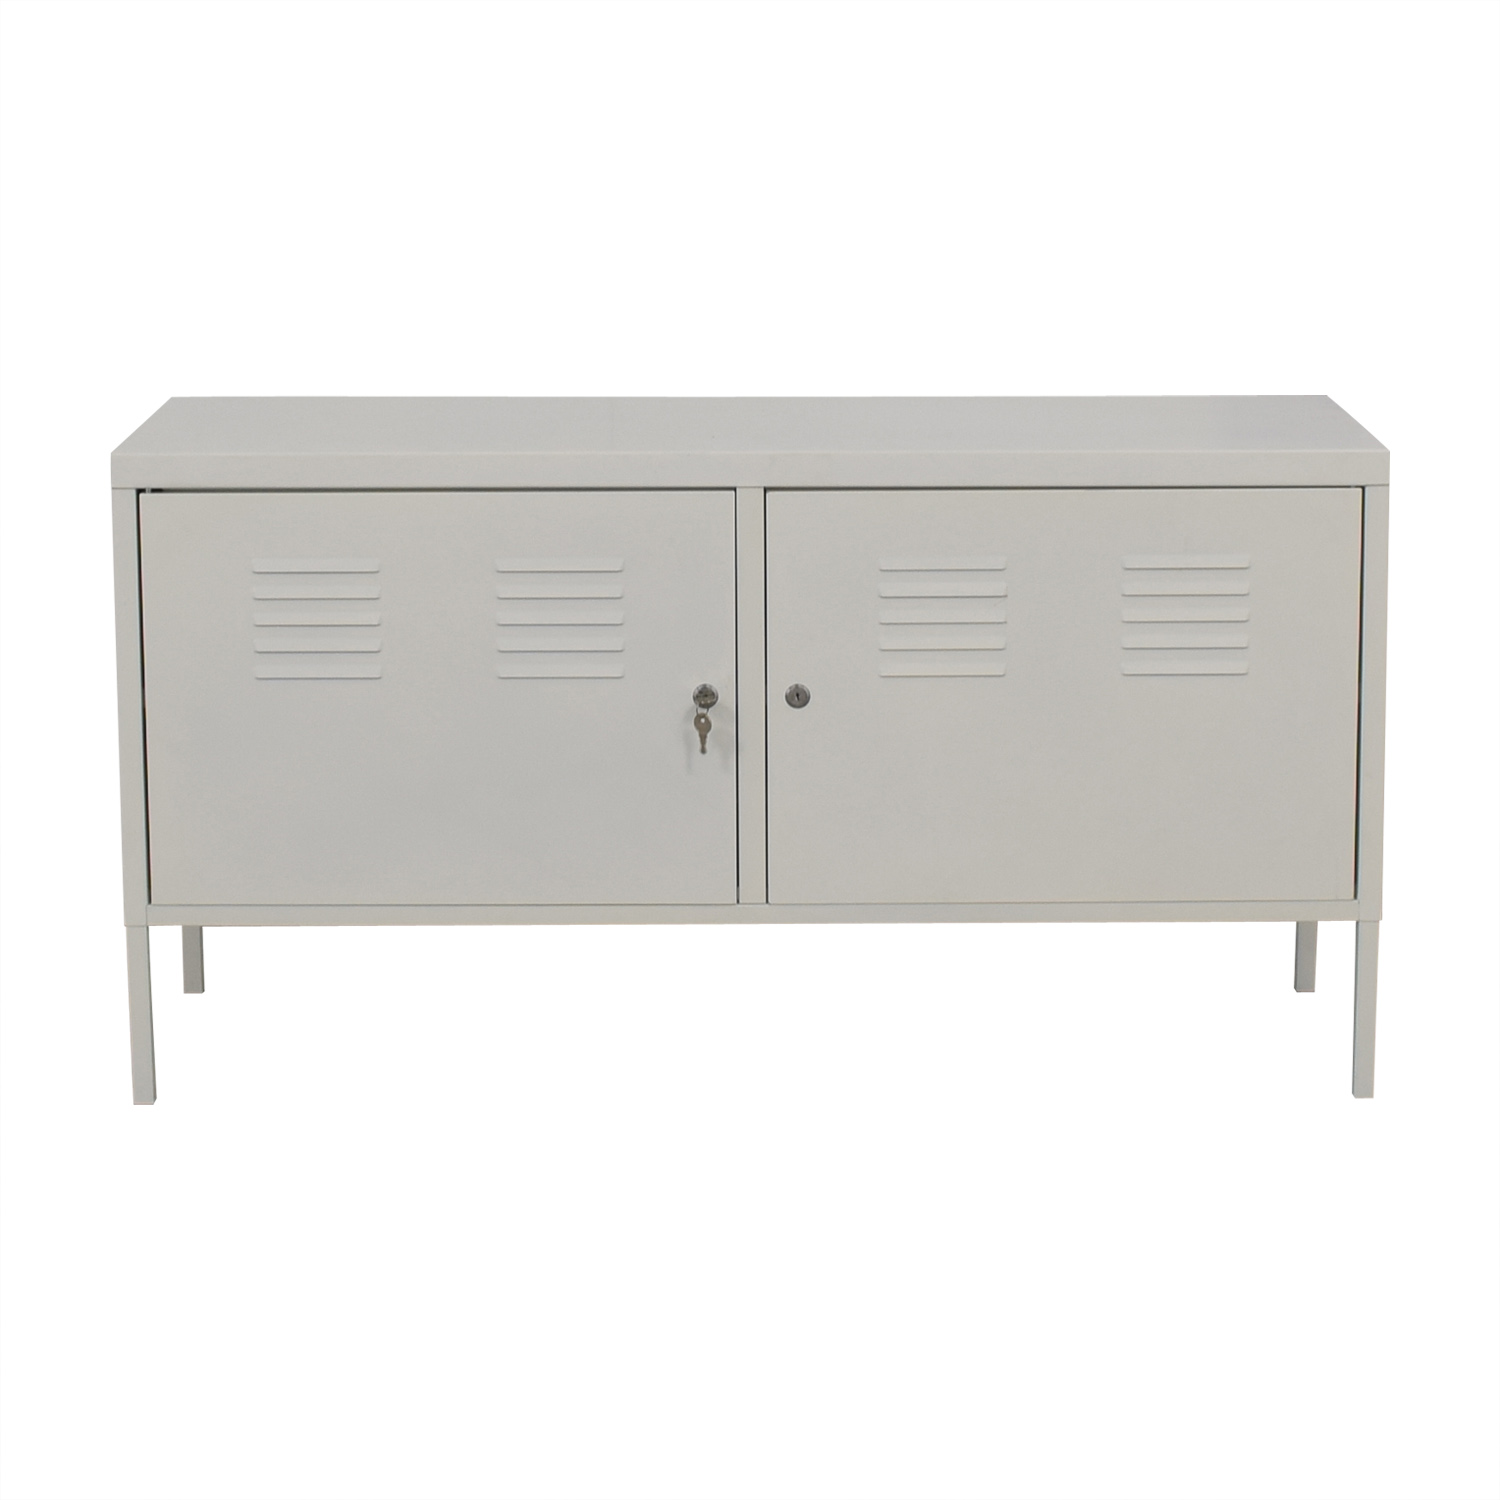 IKEA IKEA White Metal Locker Cabinet second hand